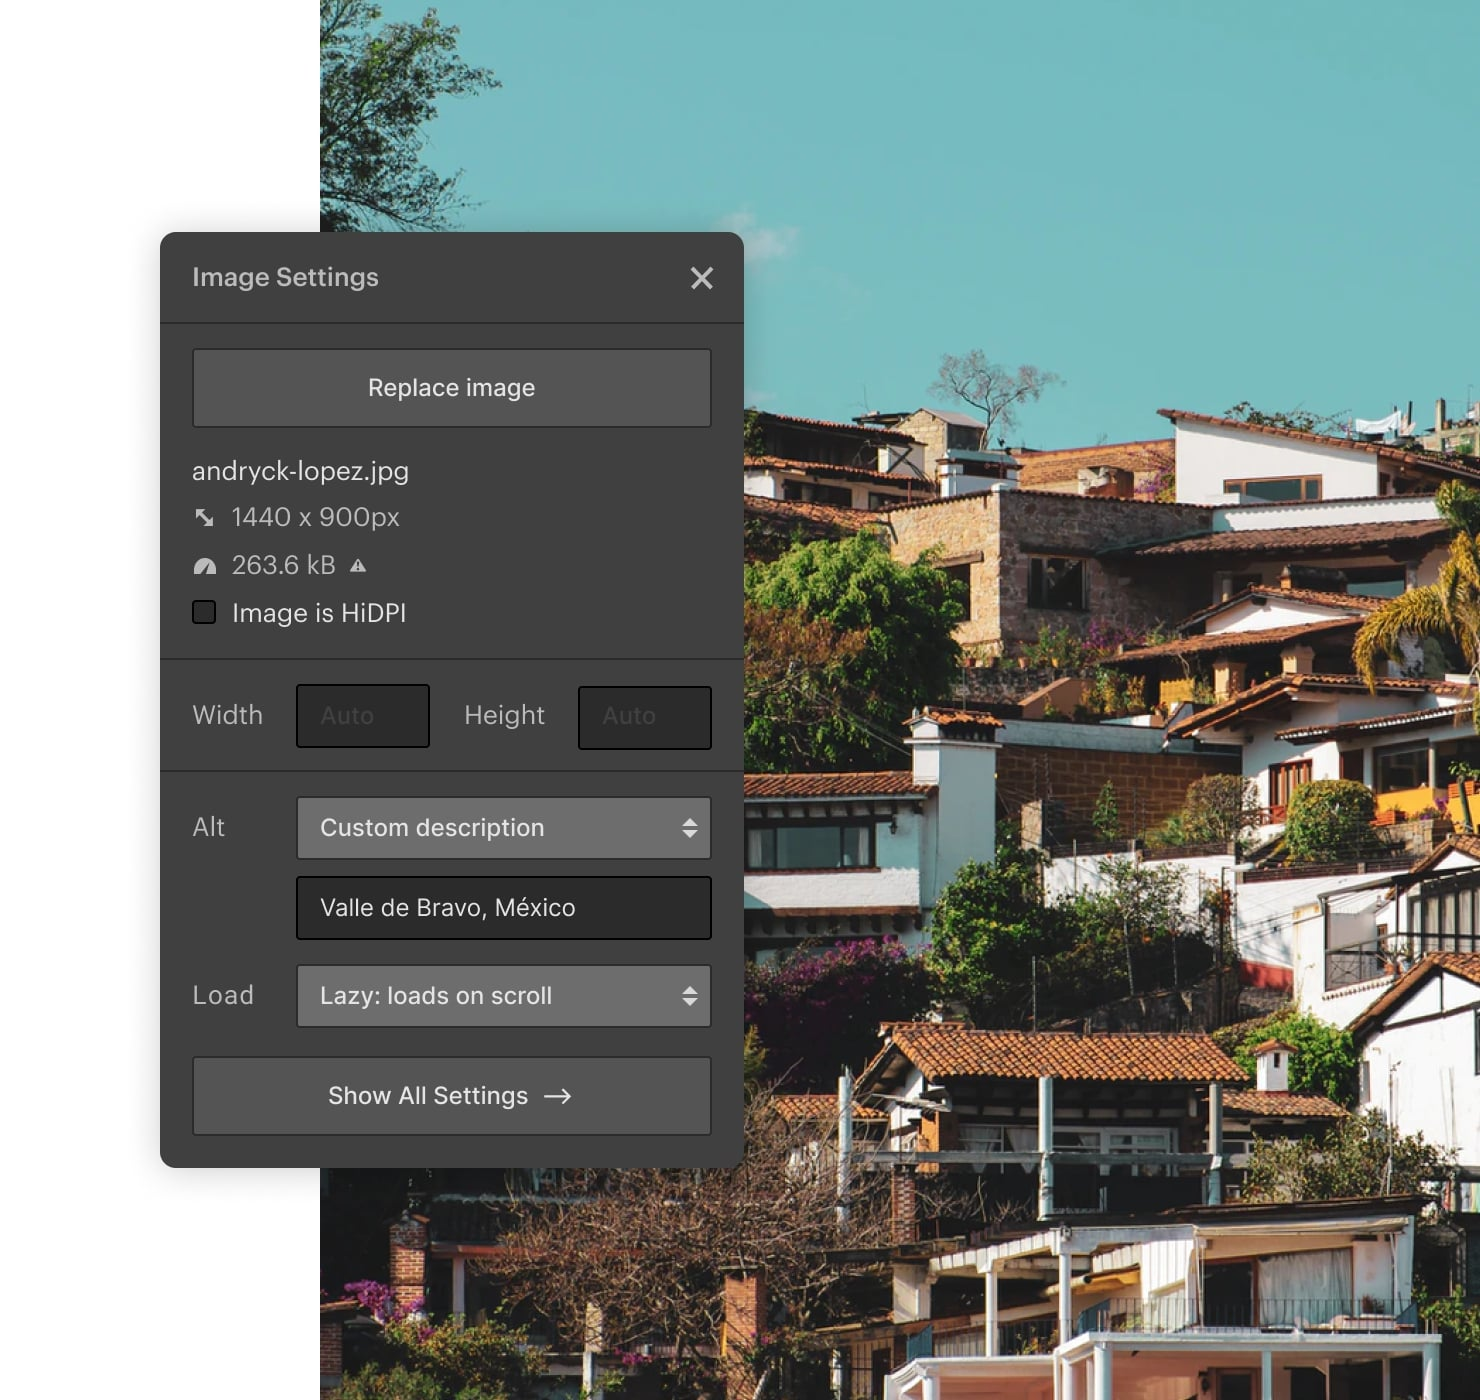 An example of image alt tag editing in Webflow.